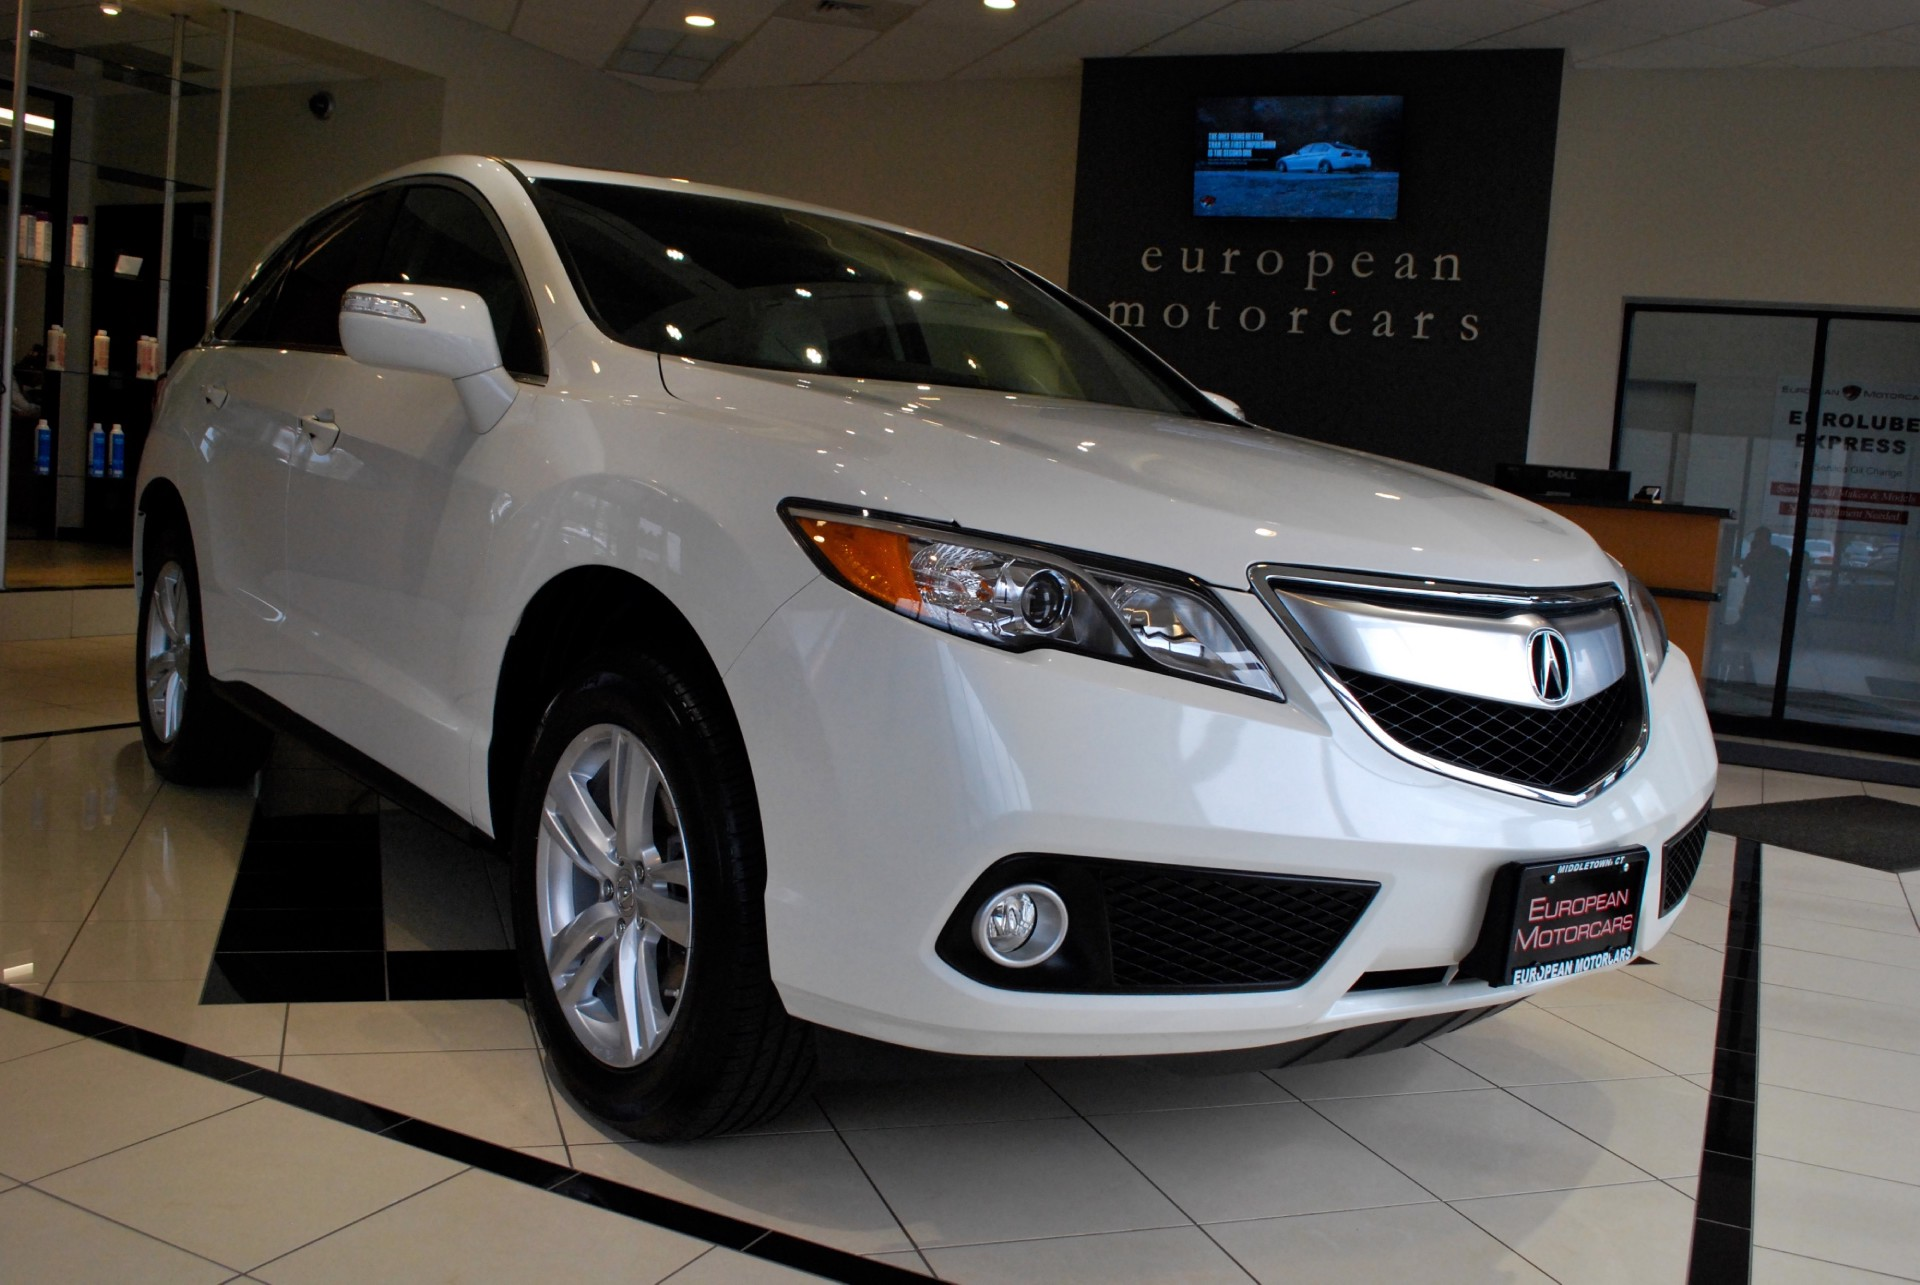 2013 acura rdx for sale in hartford ct cargurus. Black Bedroom Furniture Sets. Home Design Ideas